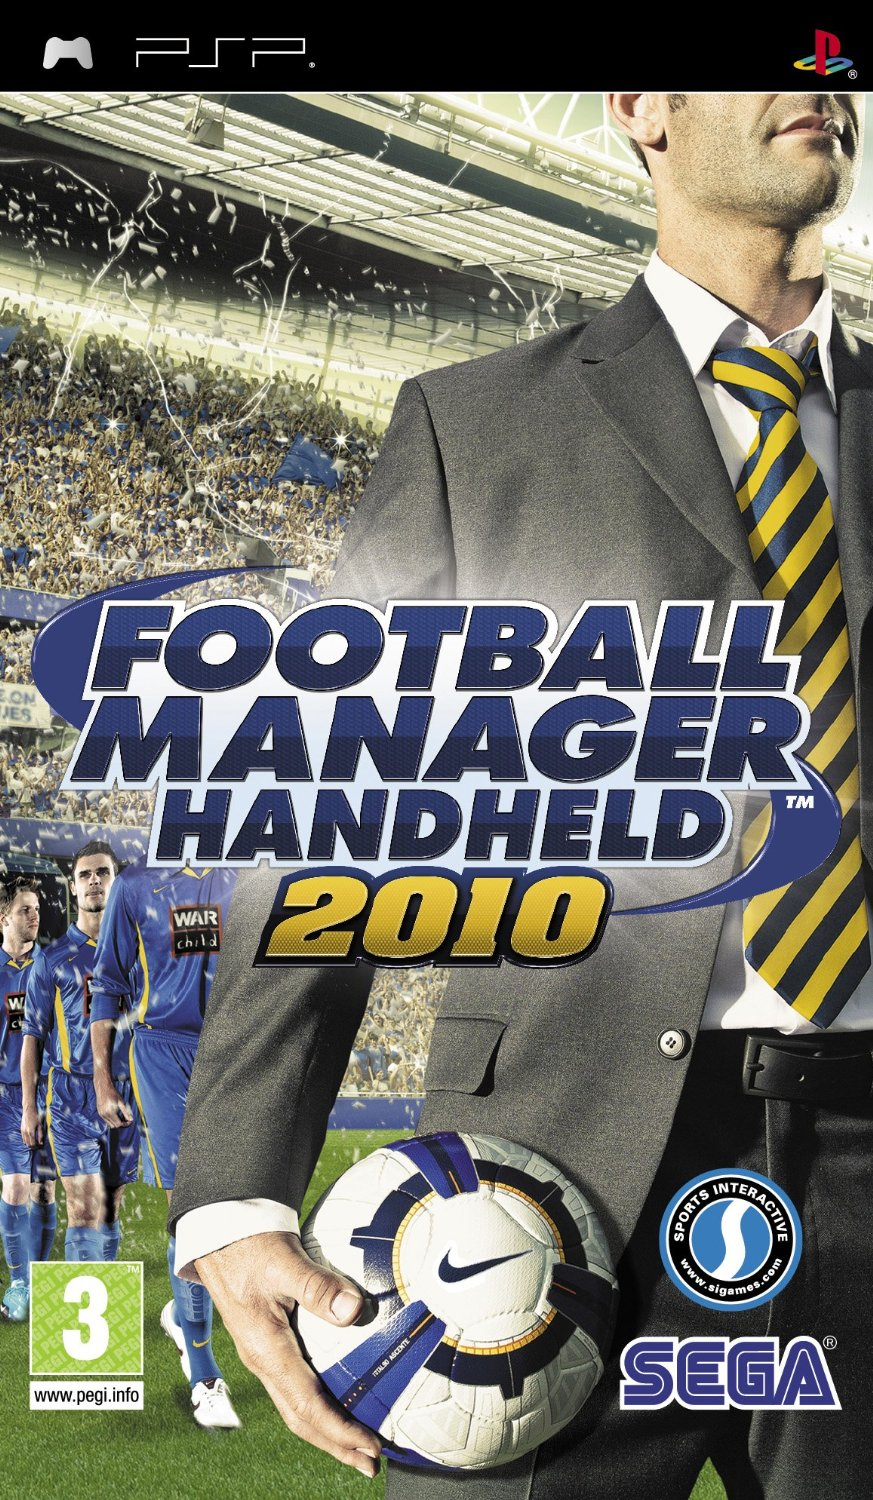 Football Manager Hndheld 2010